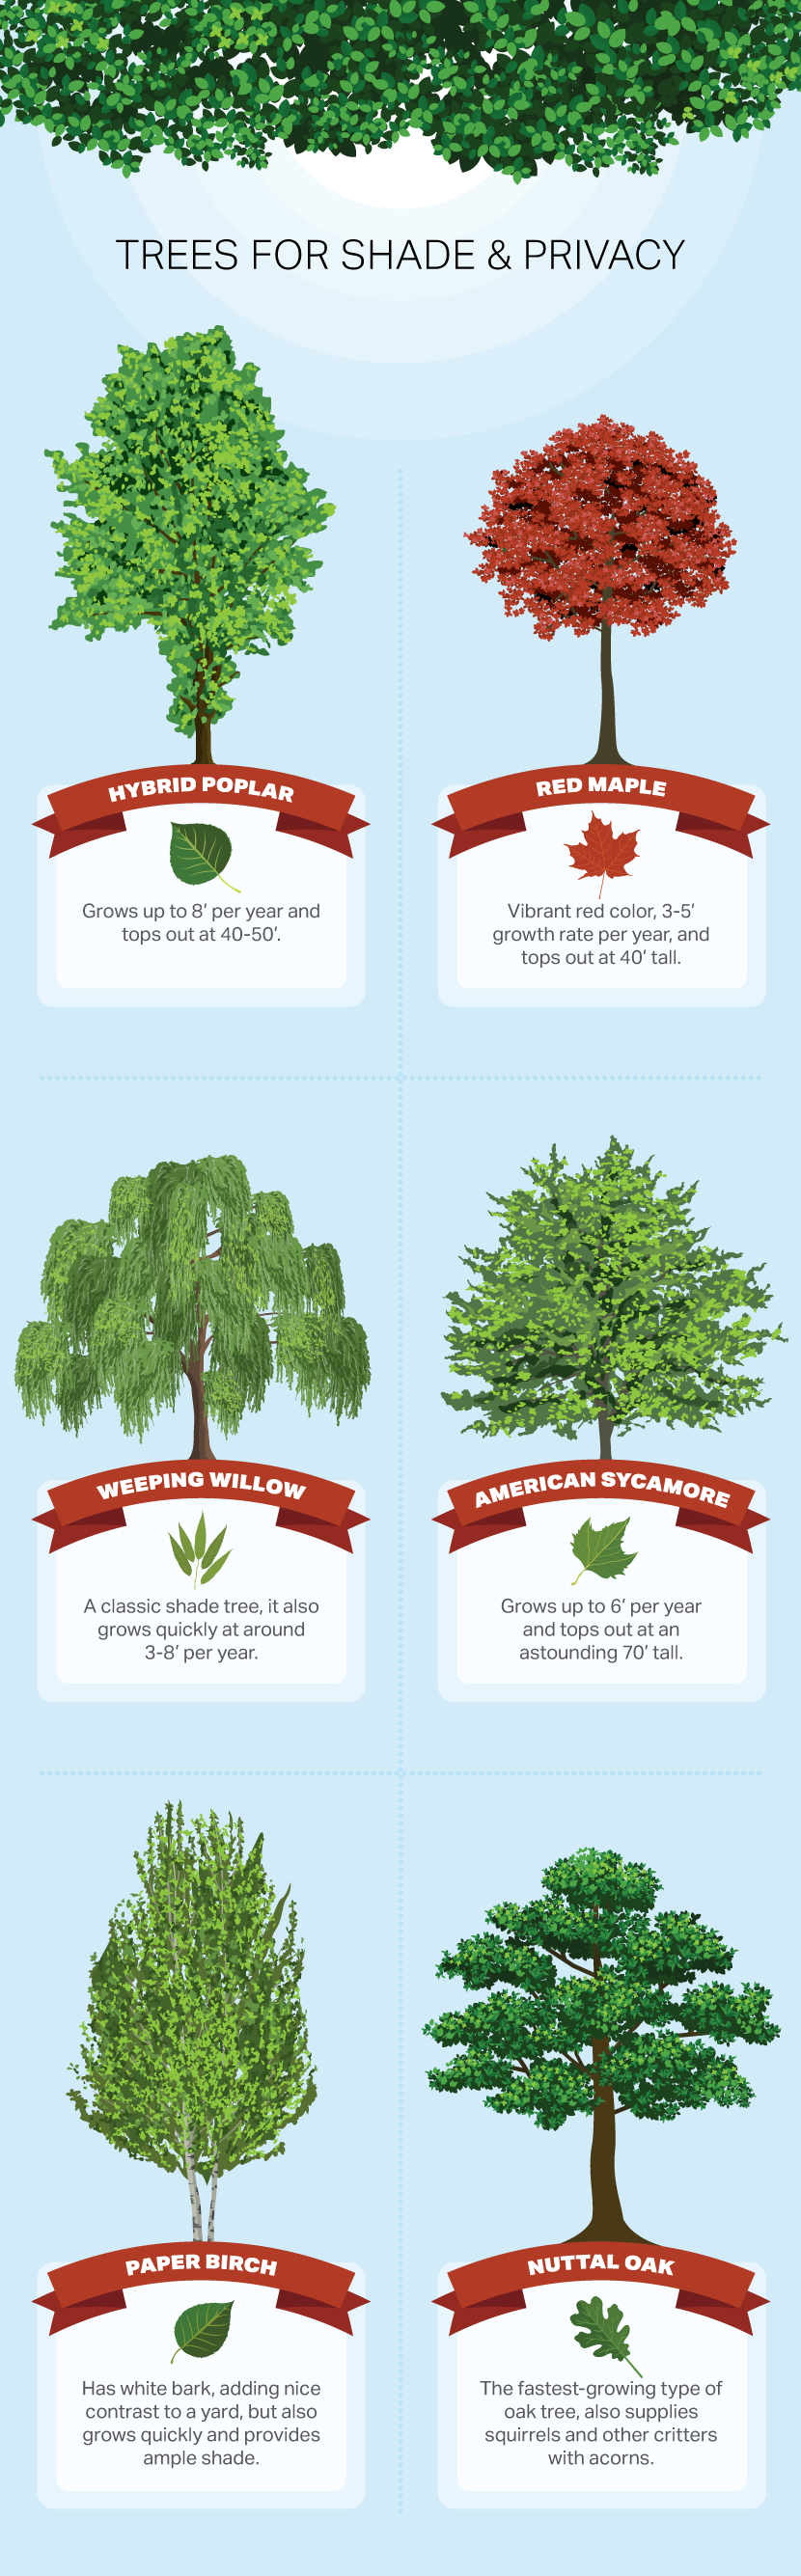 Trees For Shade and Privacy - How to Choose a Tree For Your Yard or Garden